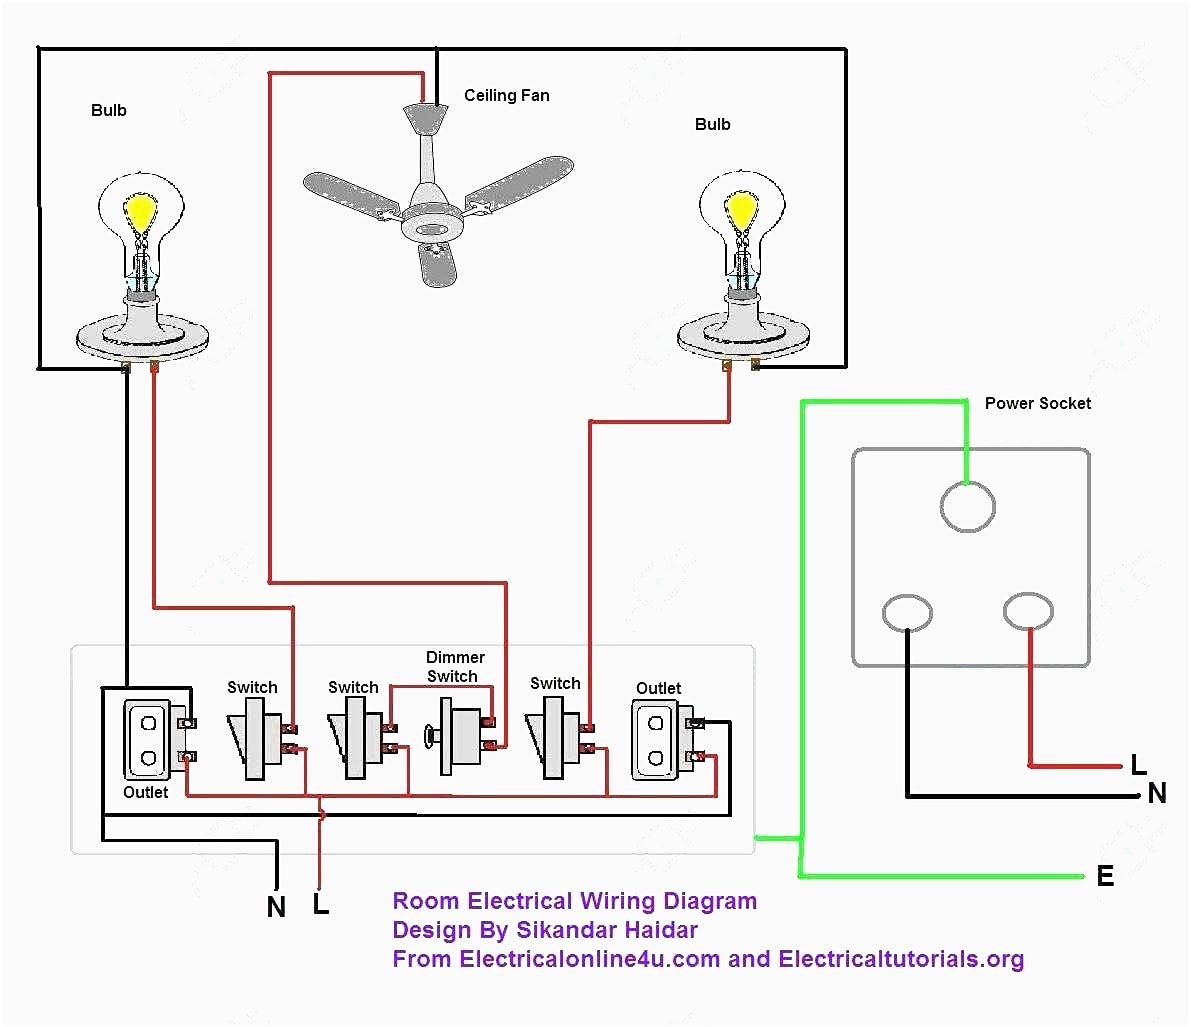 Home Electrical Circuit Diagrams Home Circuit Diagrams Blog Wiring